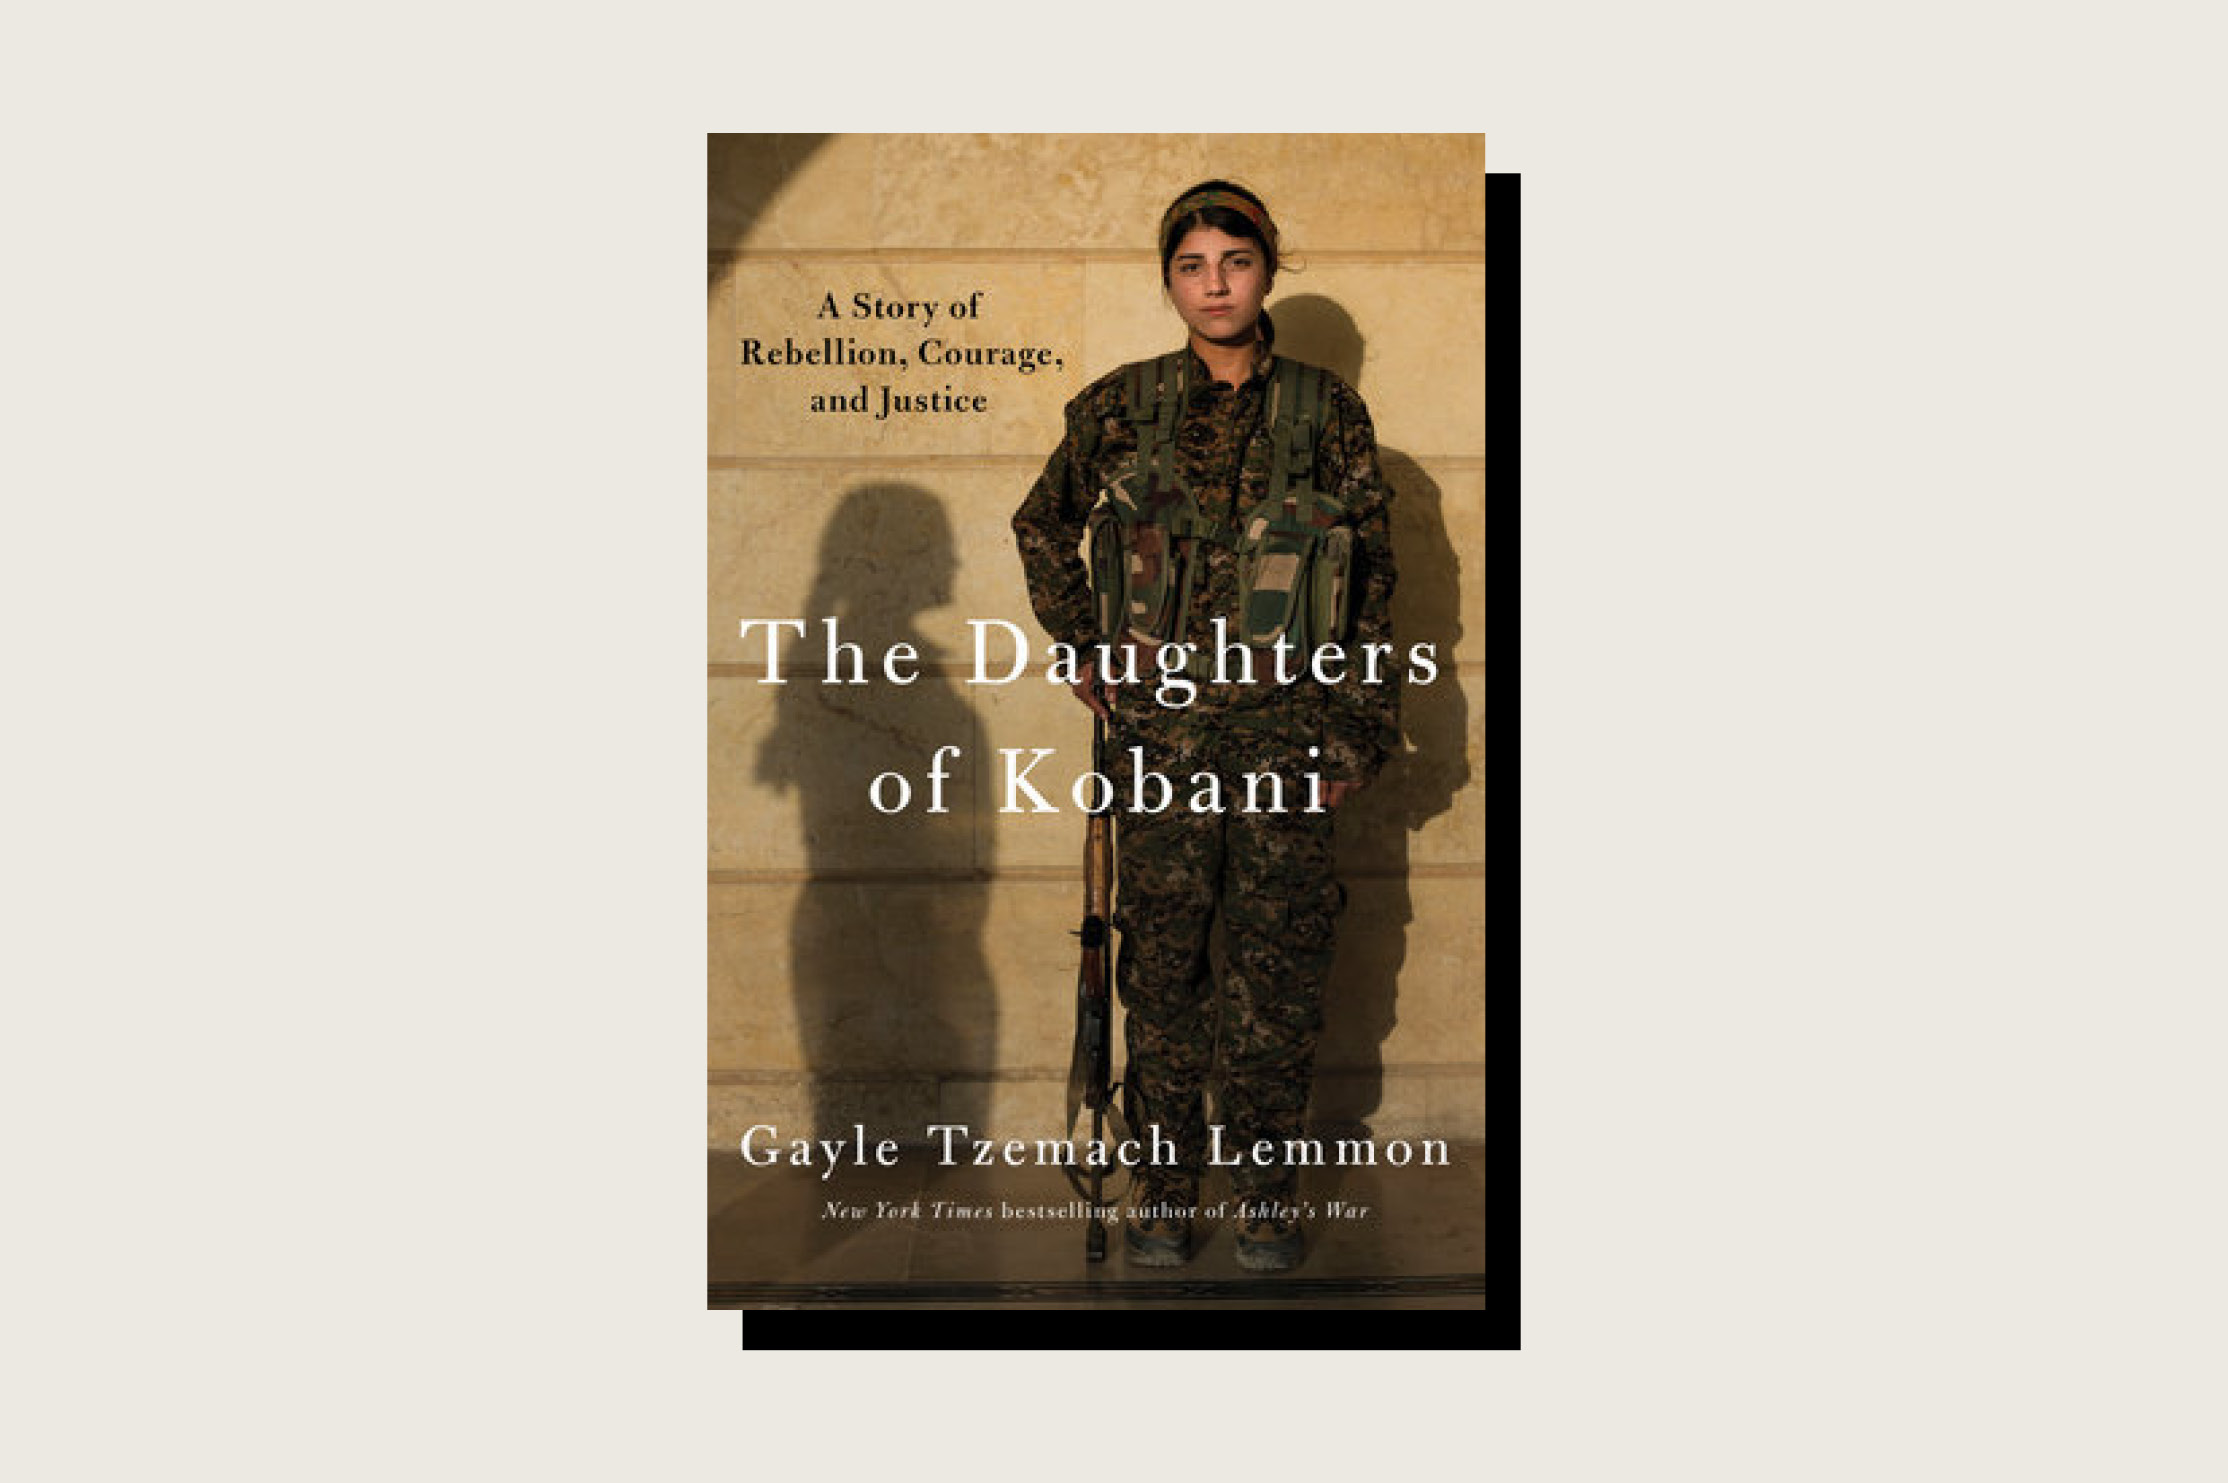 The Daughters of Kobani: A Story of Rebellion, Courage, and Justice, Gayle Tzemach Lemmon, Penguin Press, 288 pp., , February 2021